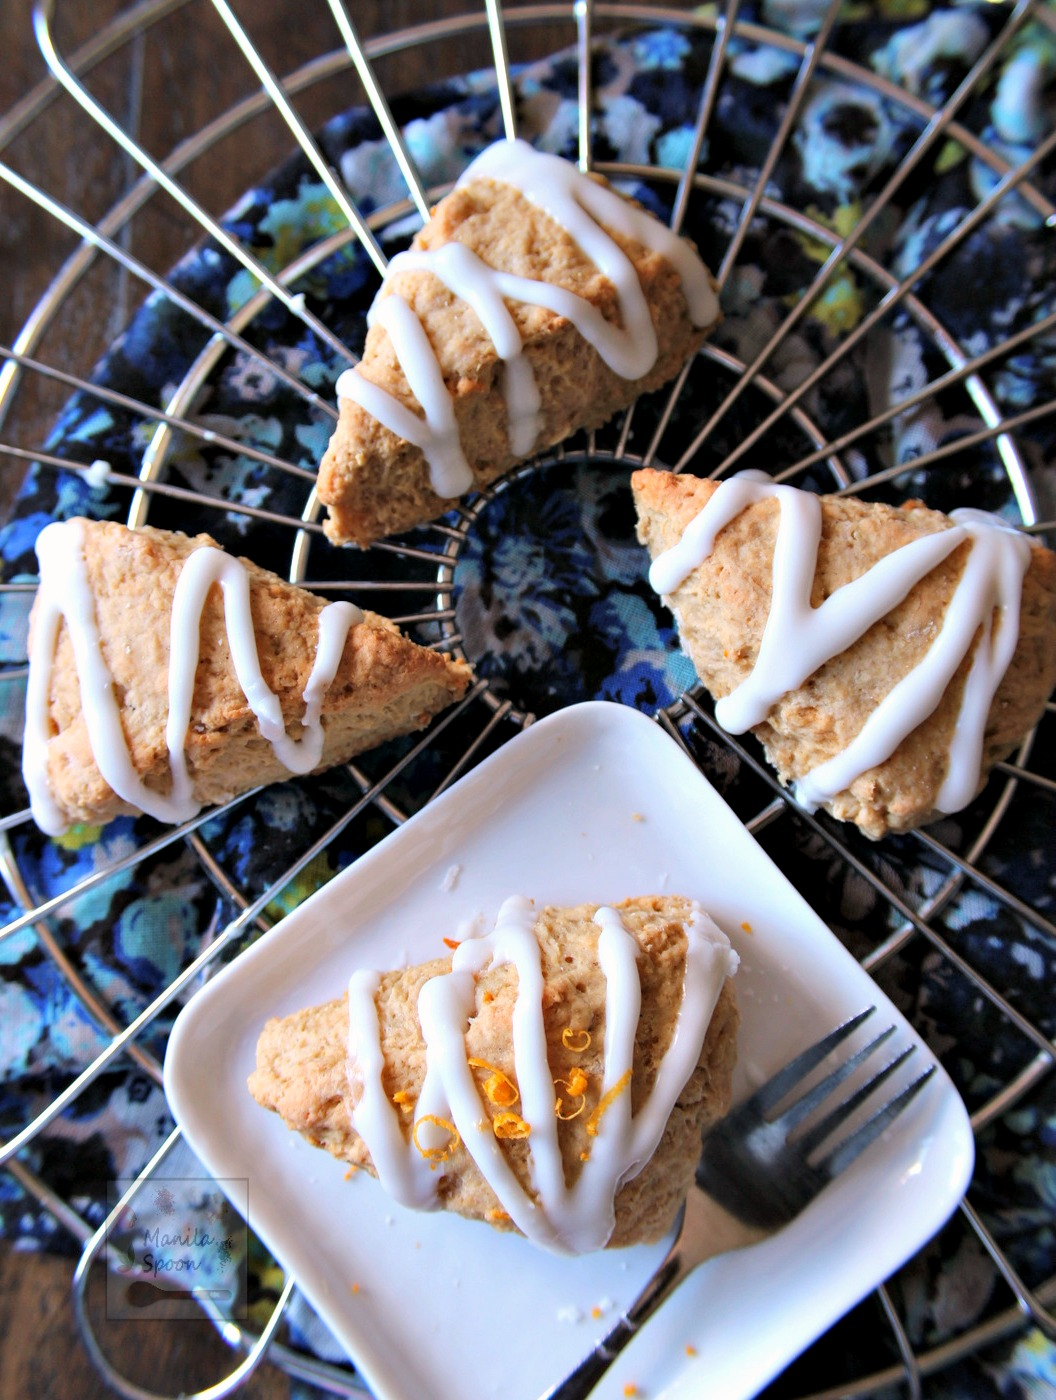 Packed with flavor and easy to make, these delicious Lemon Cardamom Scones are great with your coffee or tea. #lemonscones #cardamom #scones #cardamomscones #teatime | manilaspoon.com